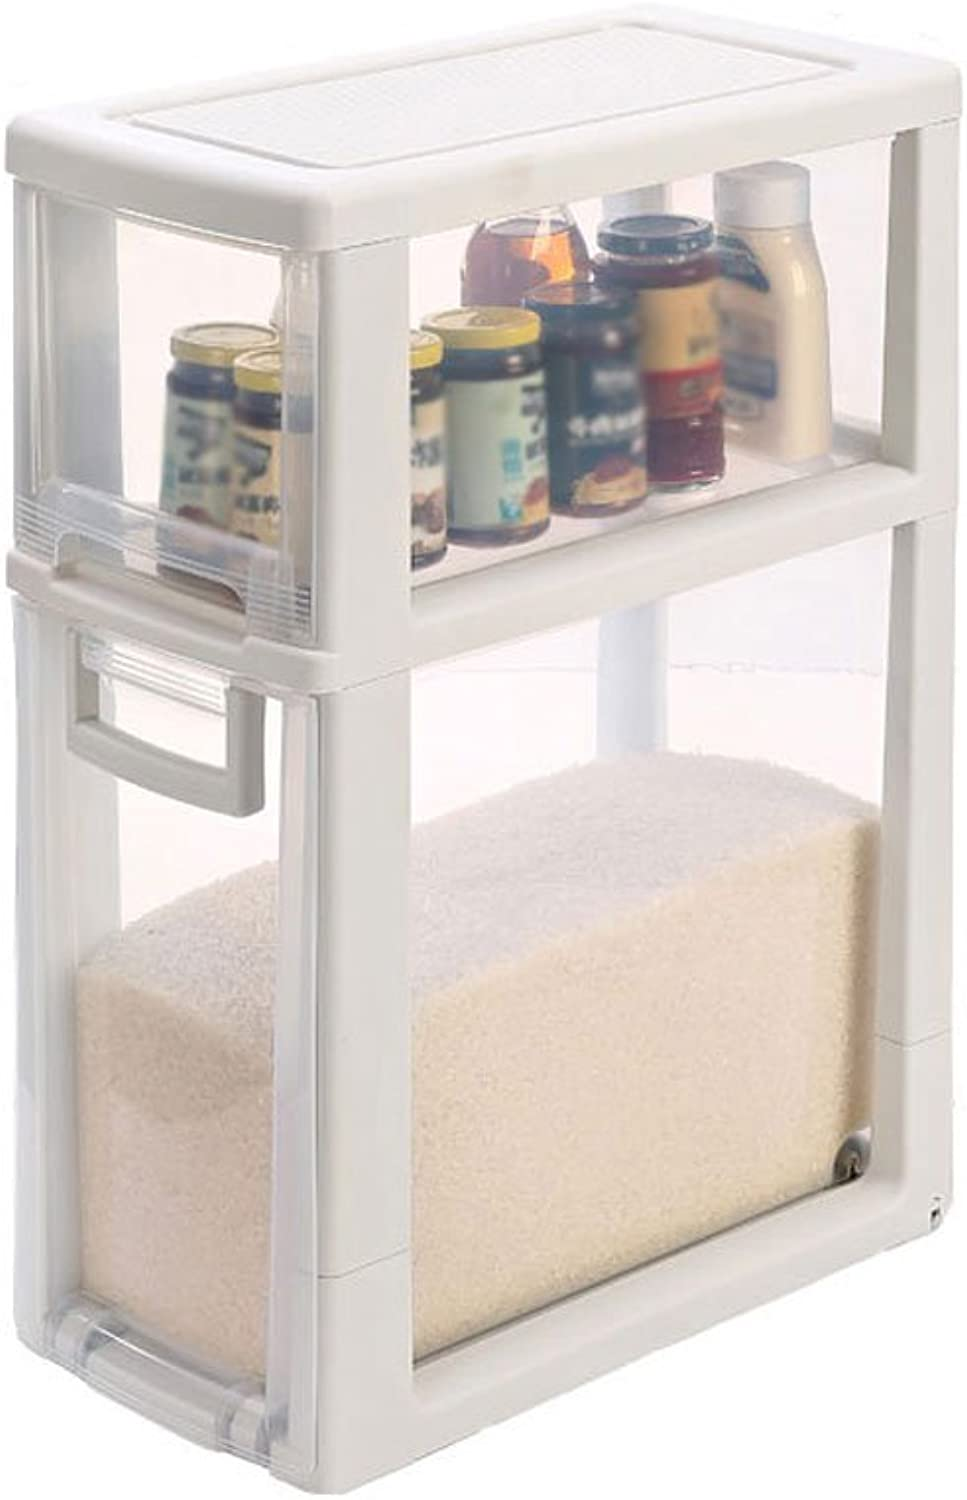 Kitchenware Racks Storage Box 2 Layers 3 Layers 4 Layers Clear Plastic Drawer Kitchen Gap Storage Cabinets Narrow Cabinet Rack Bathroom Rack Medicine Box with Casters W-22cm (Size   2 Layer)